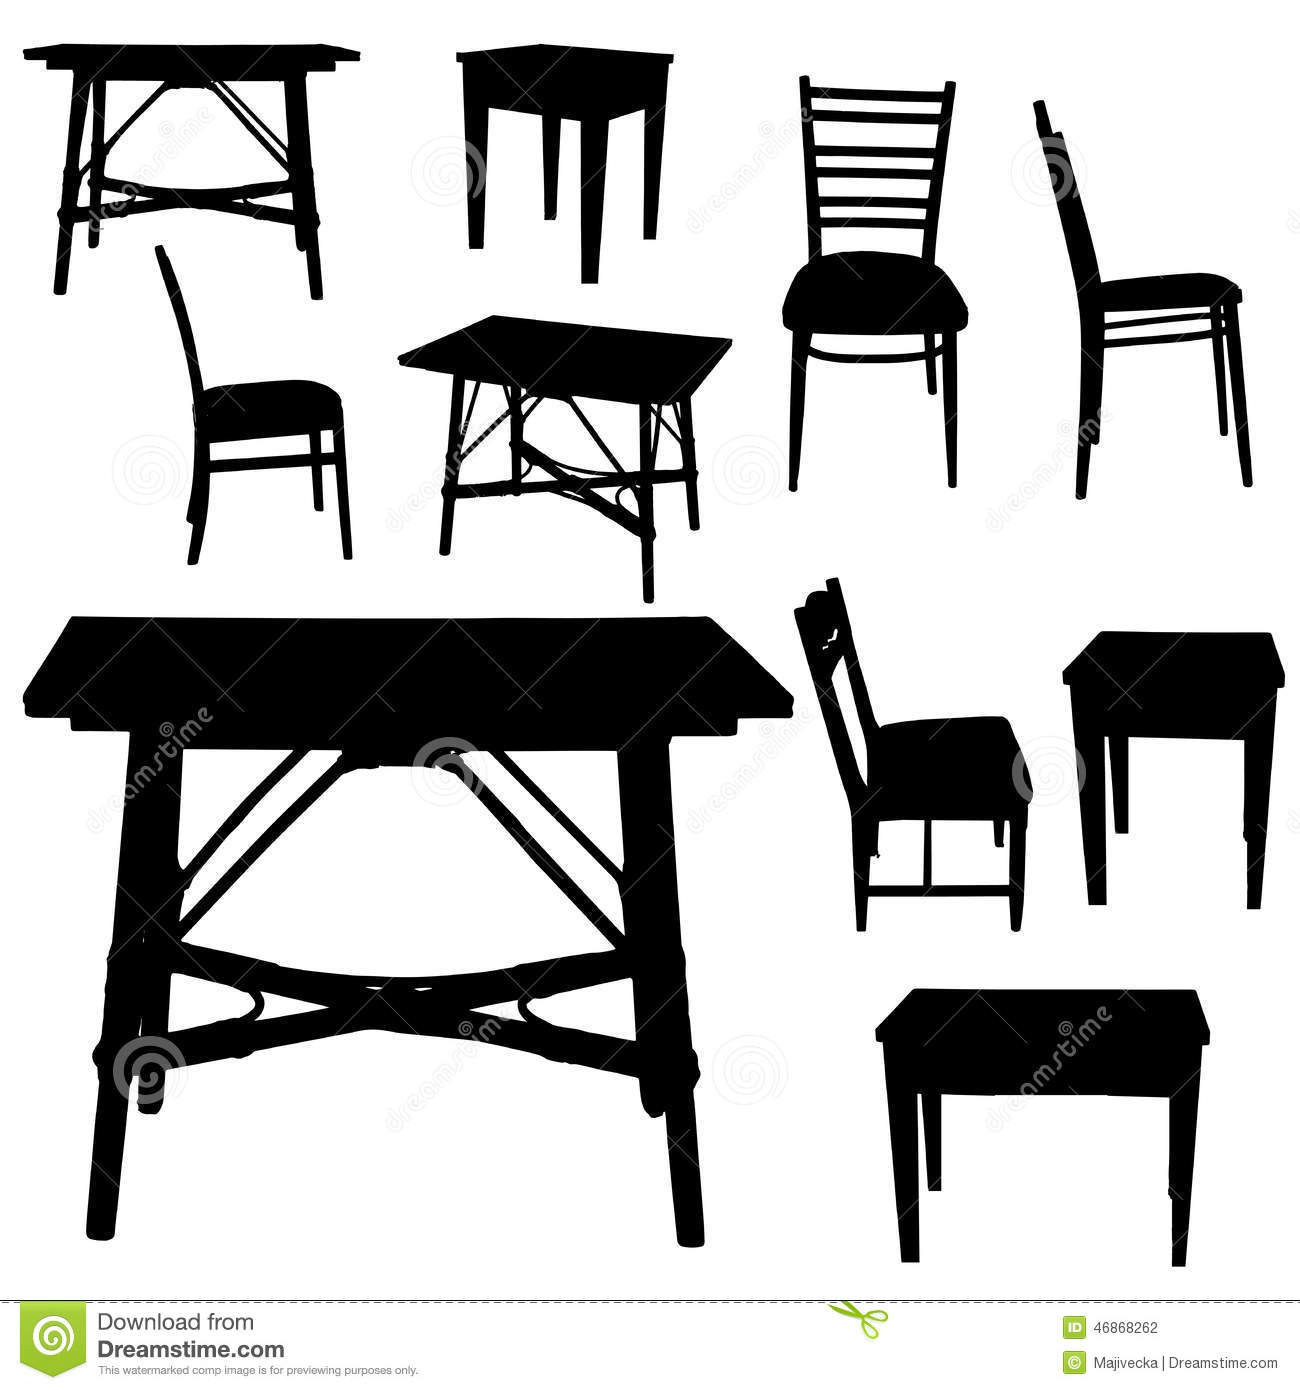 Antique chair silhouette - Vector Silhouette Of Furniture Stock Photography